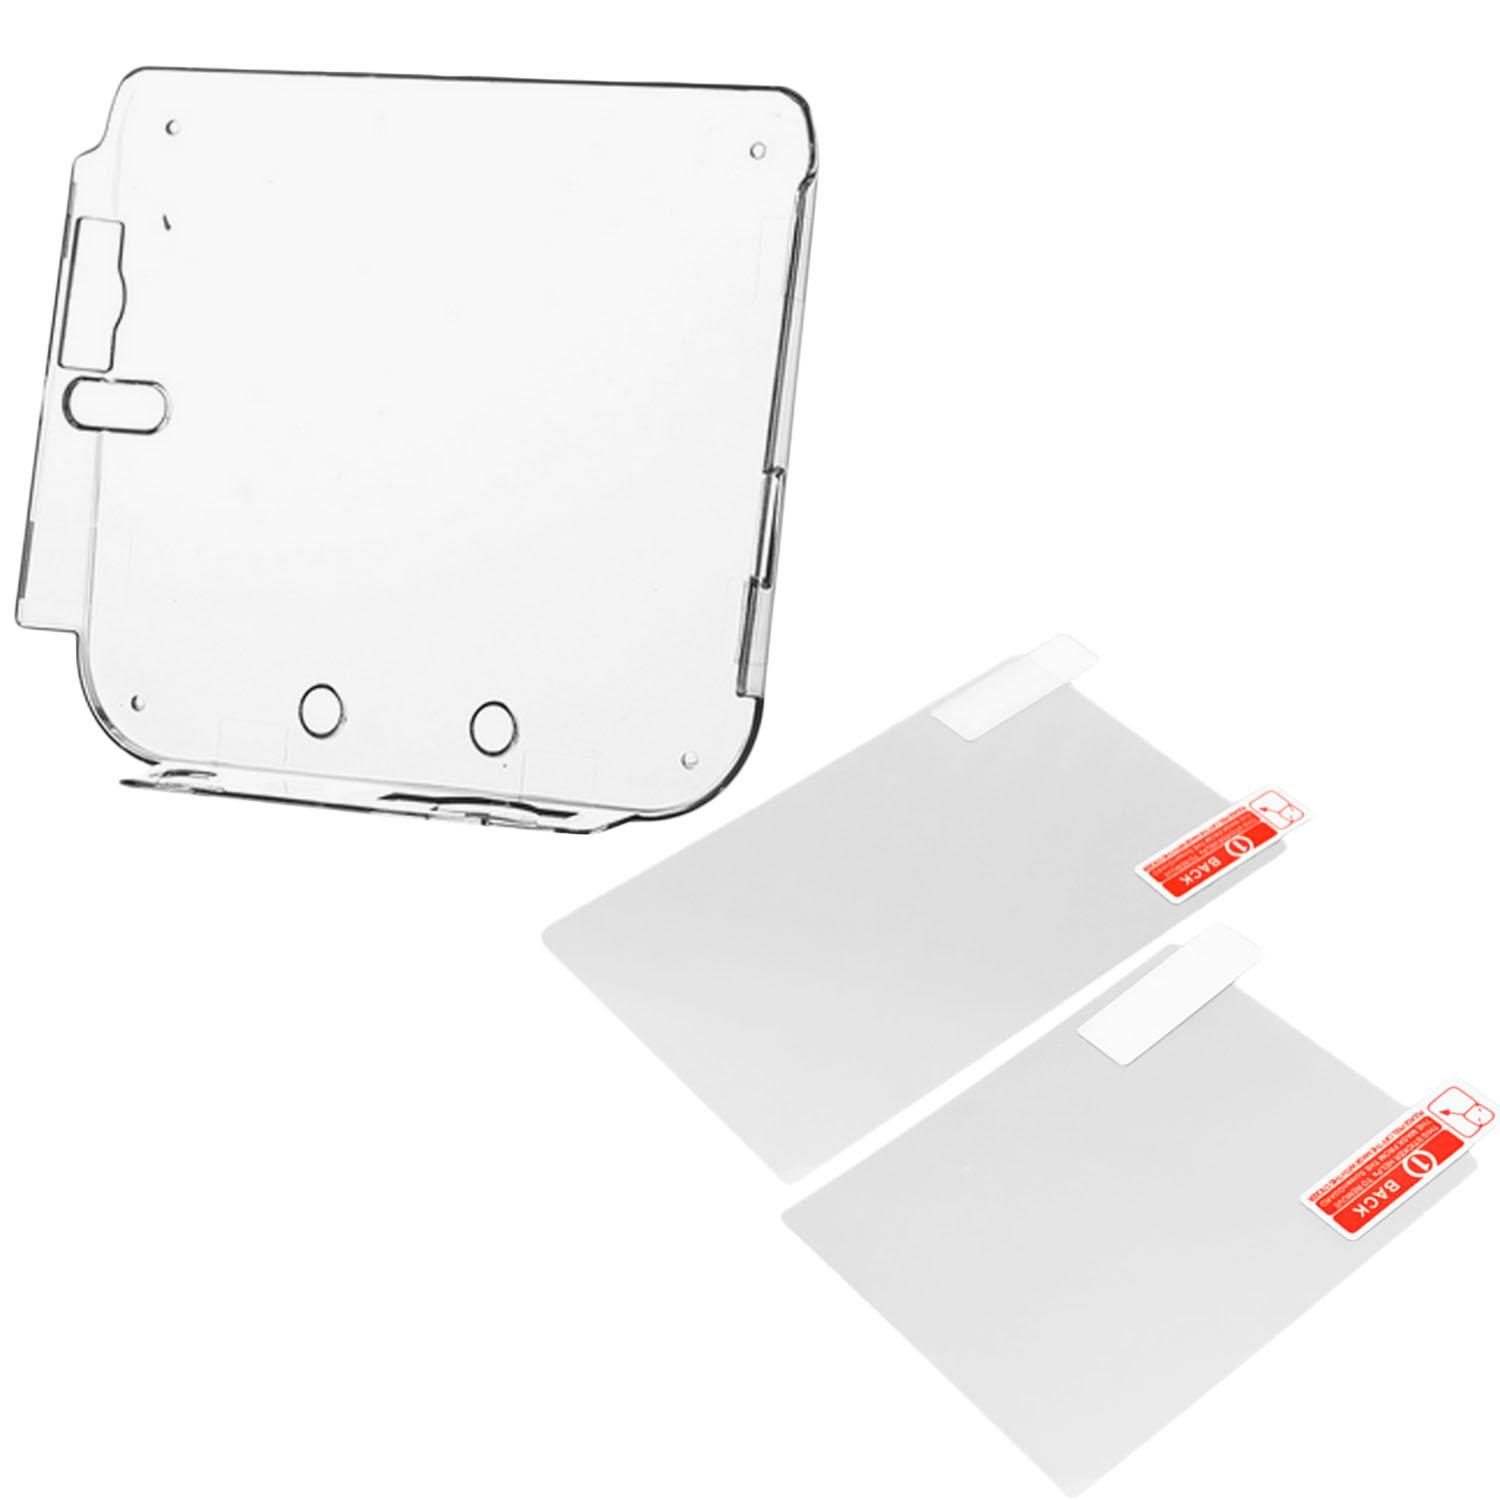 Clear Shockproof Silicone Protective Skin Wrap Case Cover Shell Sleeve with 2 Screen Protector Film for Nintendo 2DS Console - intl